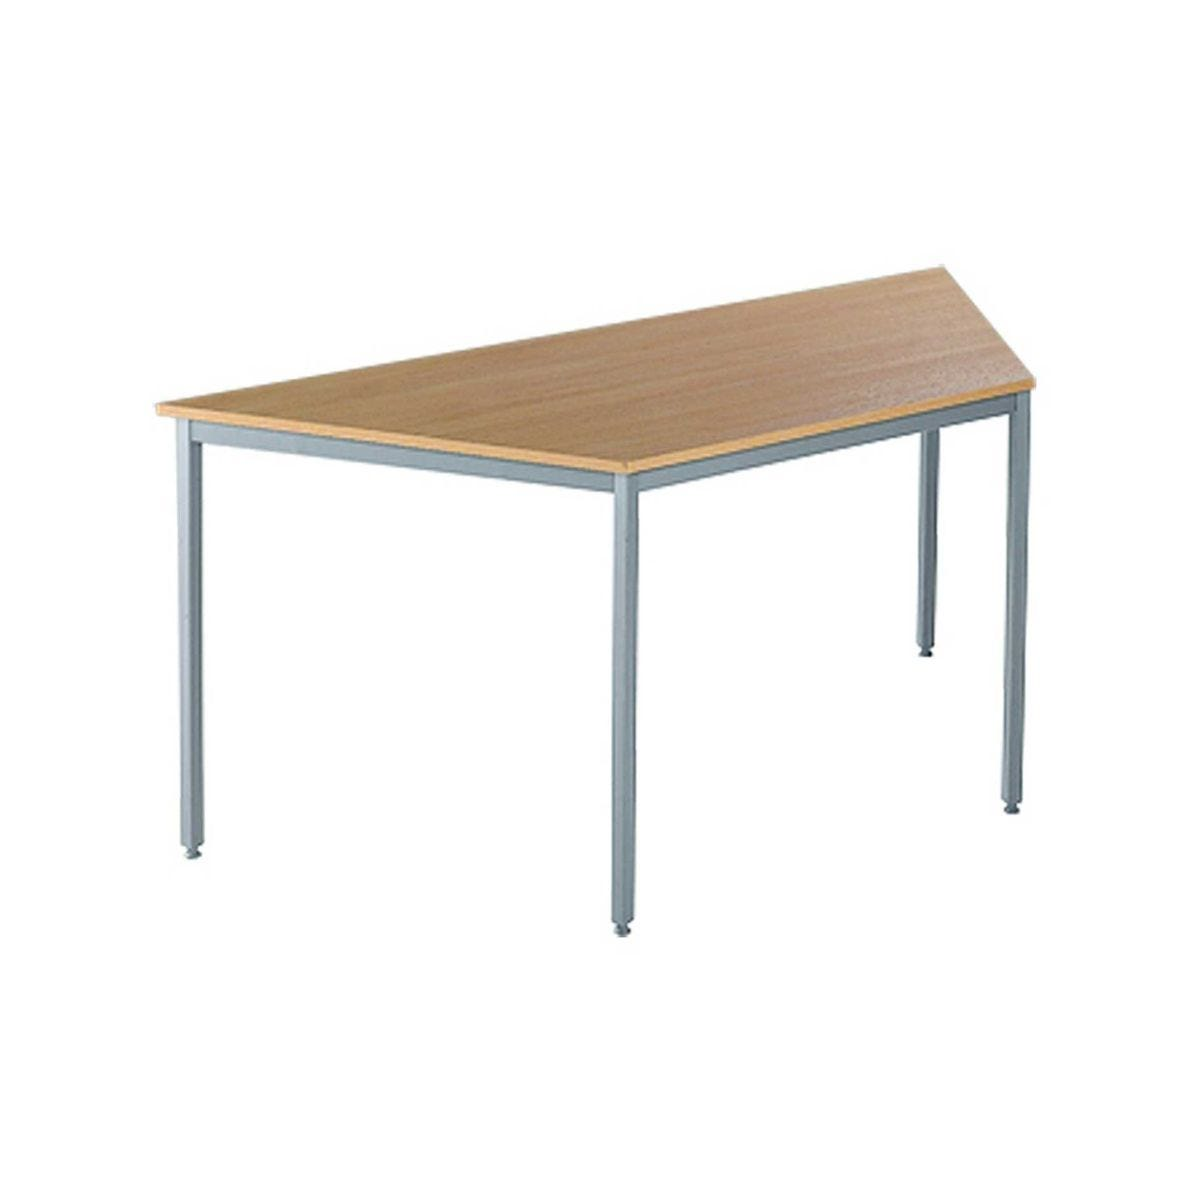 Flexi table trapezoidal table with silver frame o 134 for What times table is 99 in